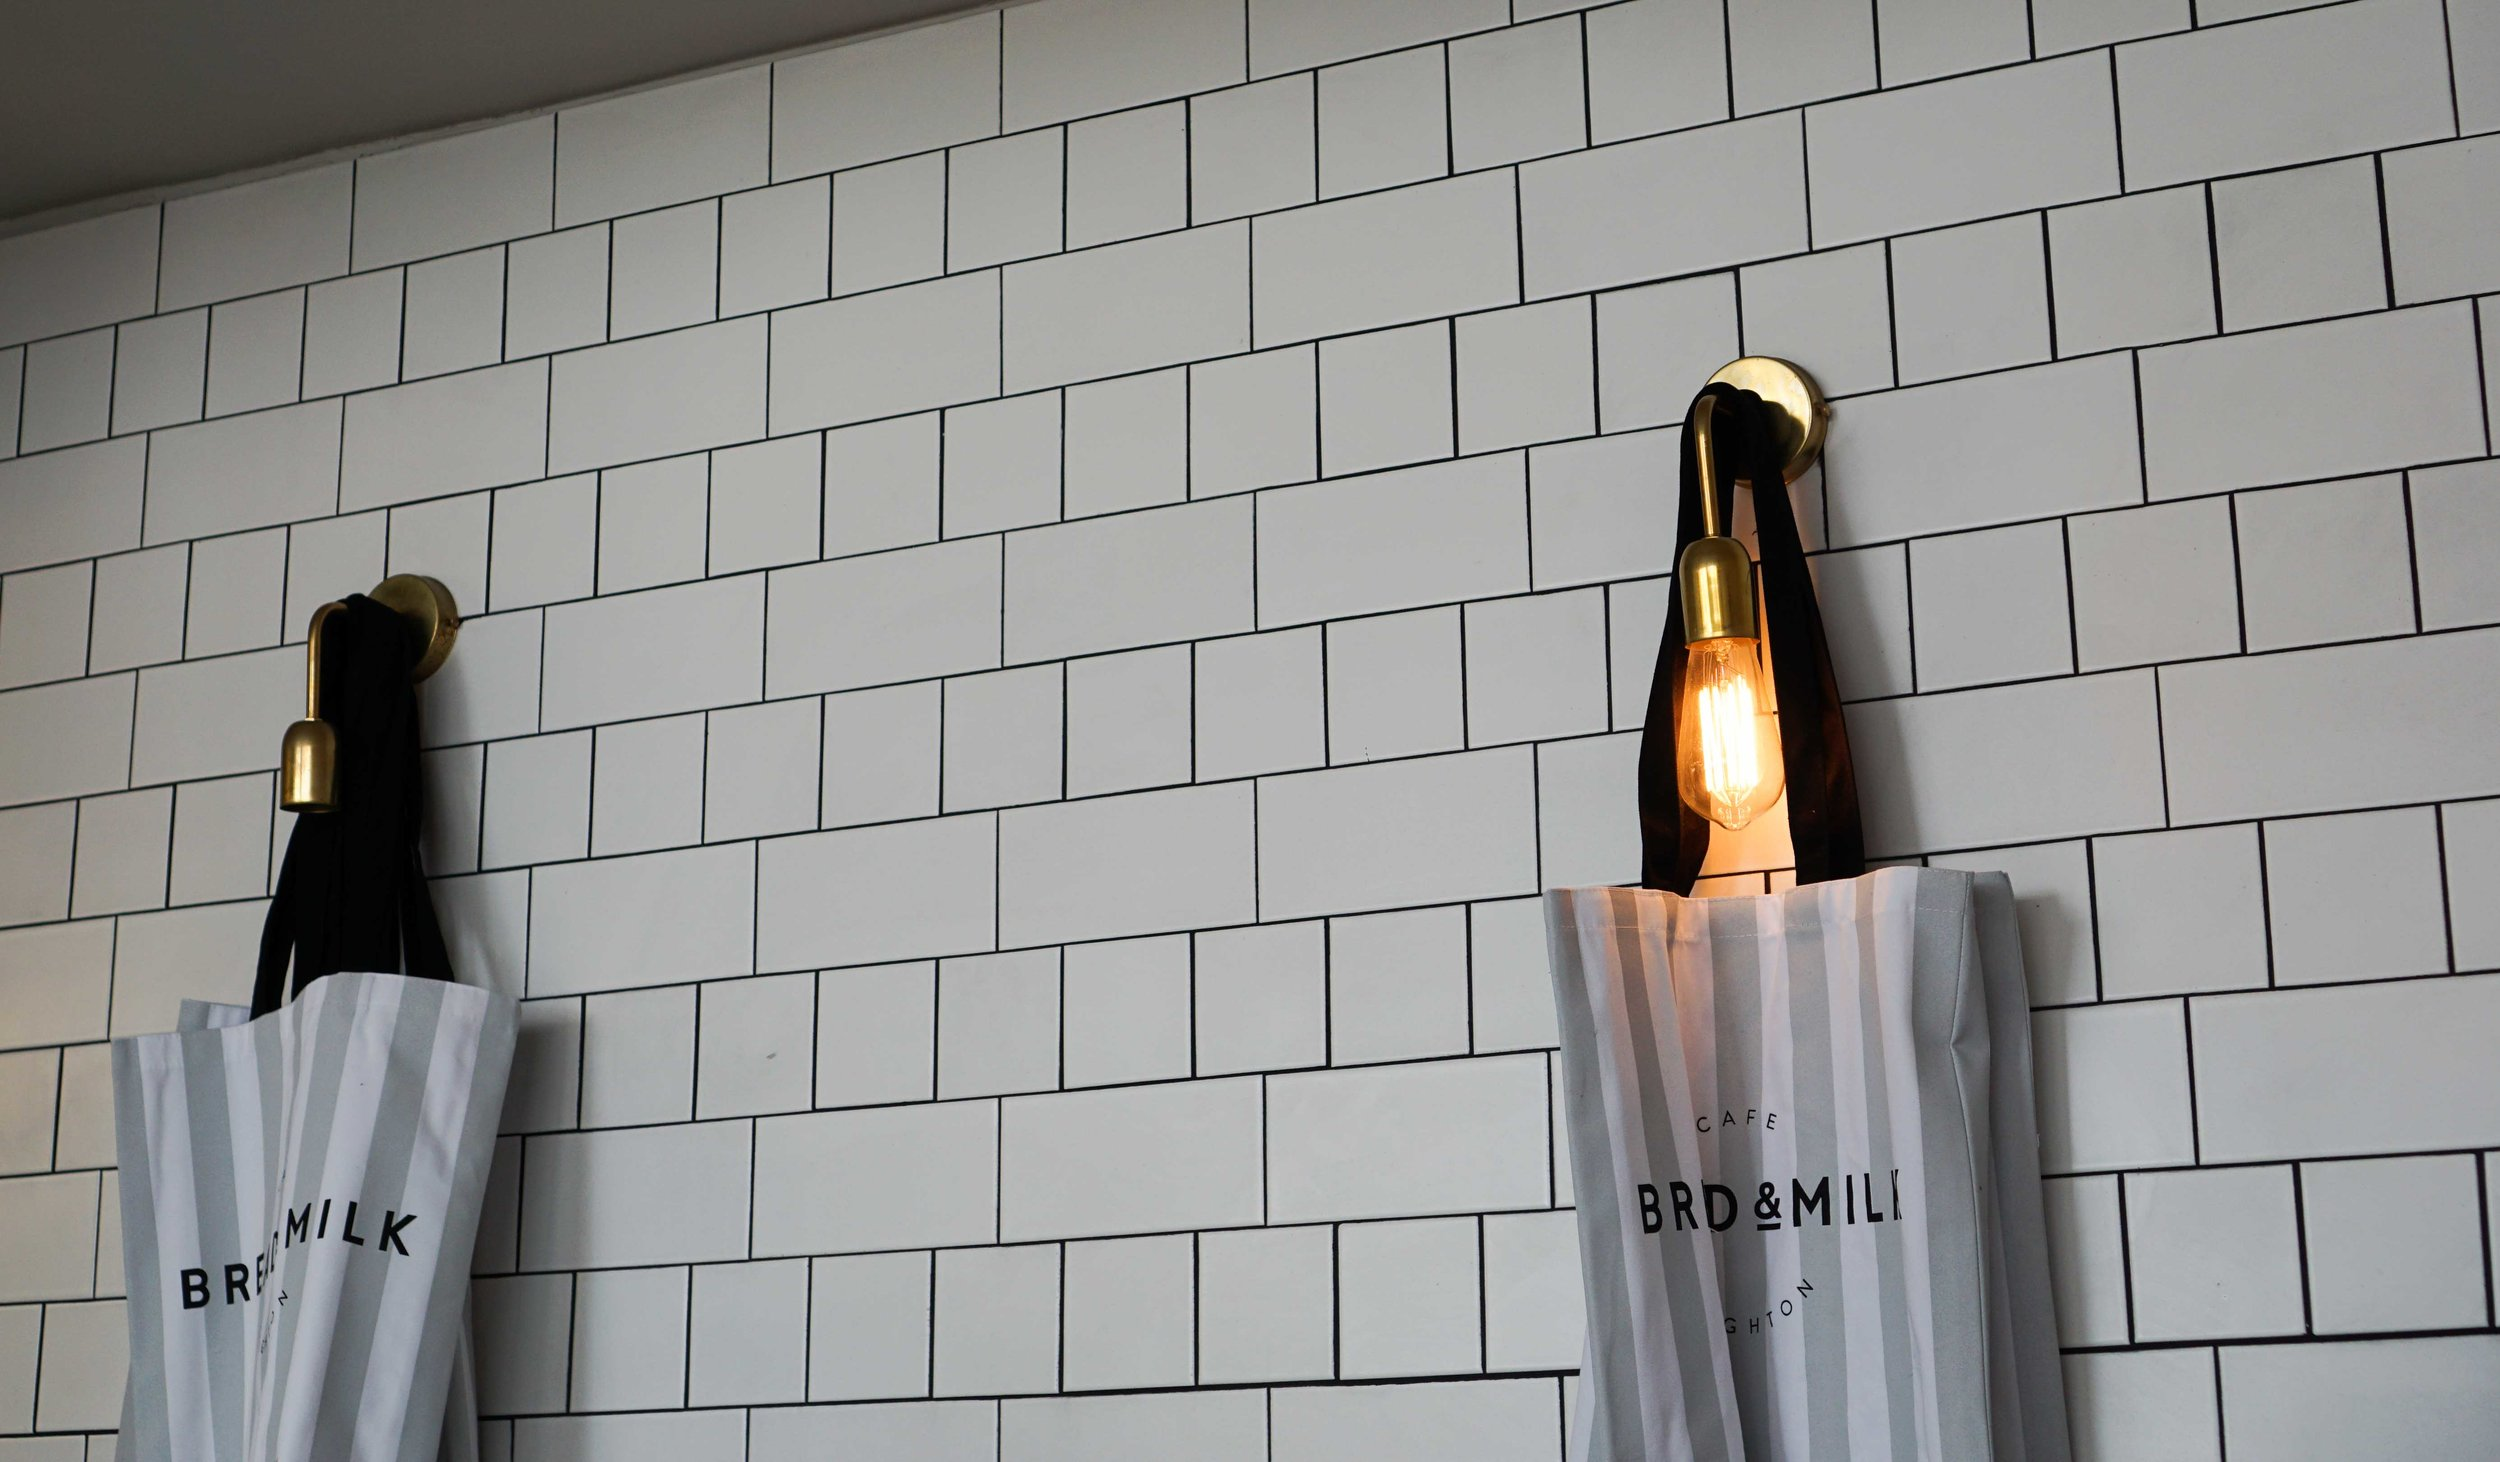 Love the white subway tiles